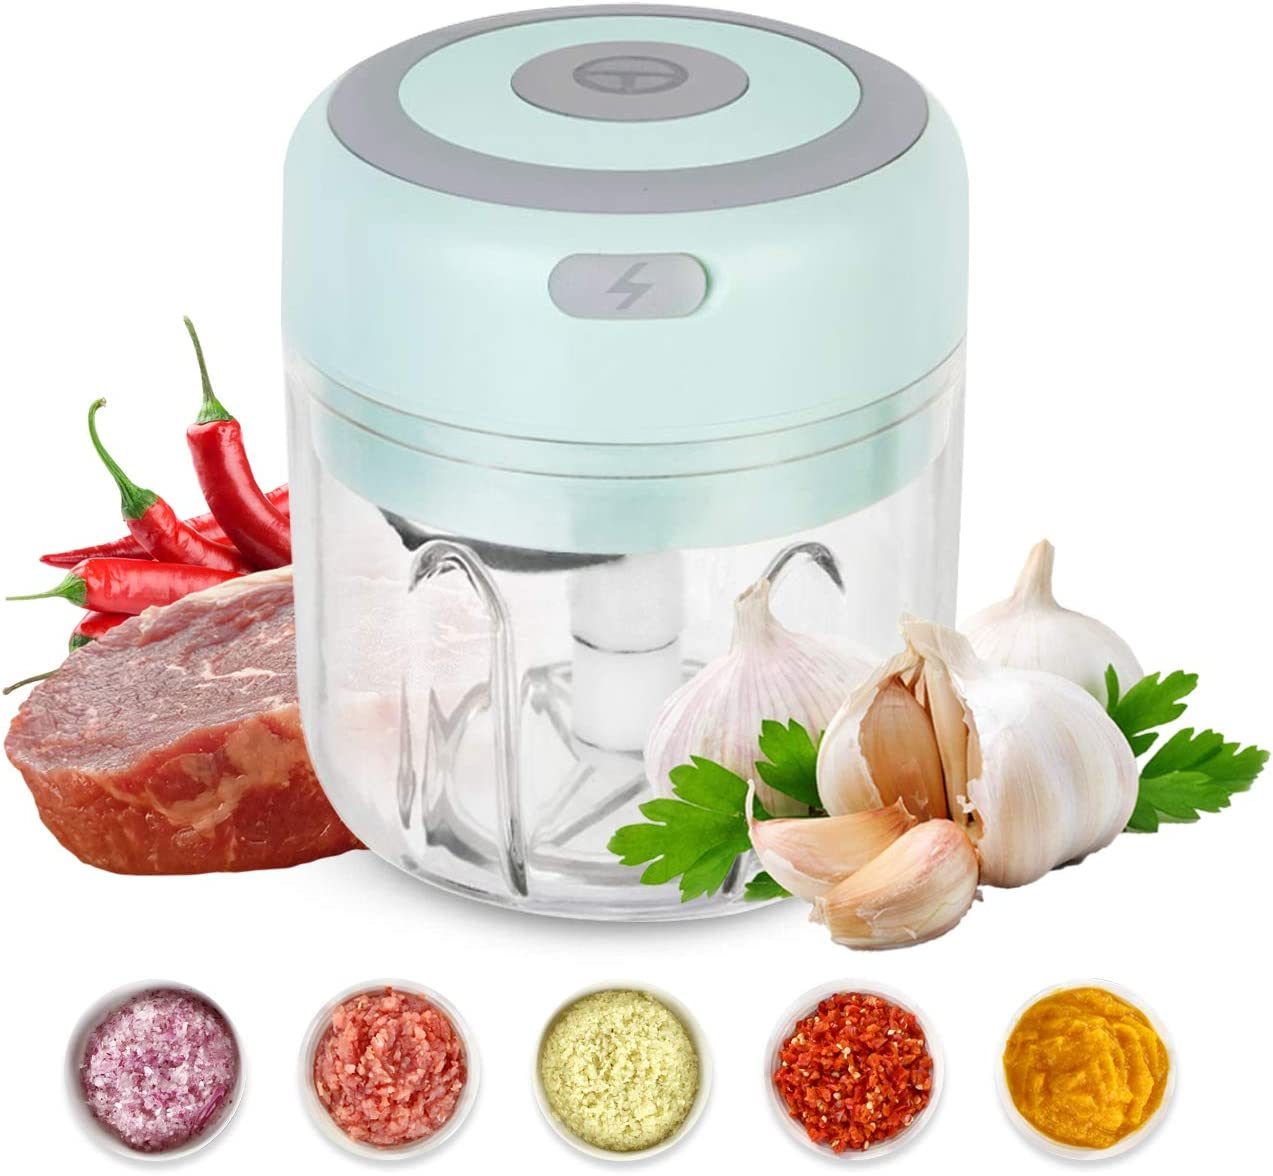 Beauty OFFicial mail order Nymph Mini Electric Chopper Max 49% OFF Vegetable Garlic Food